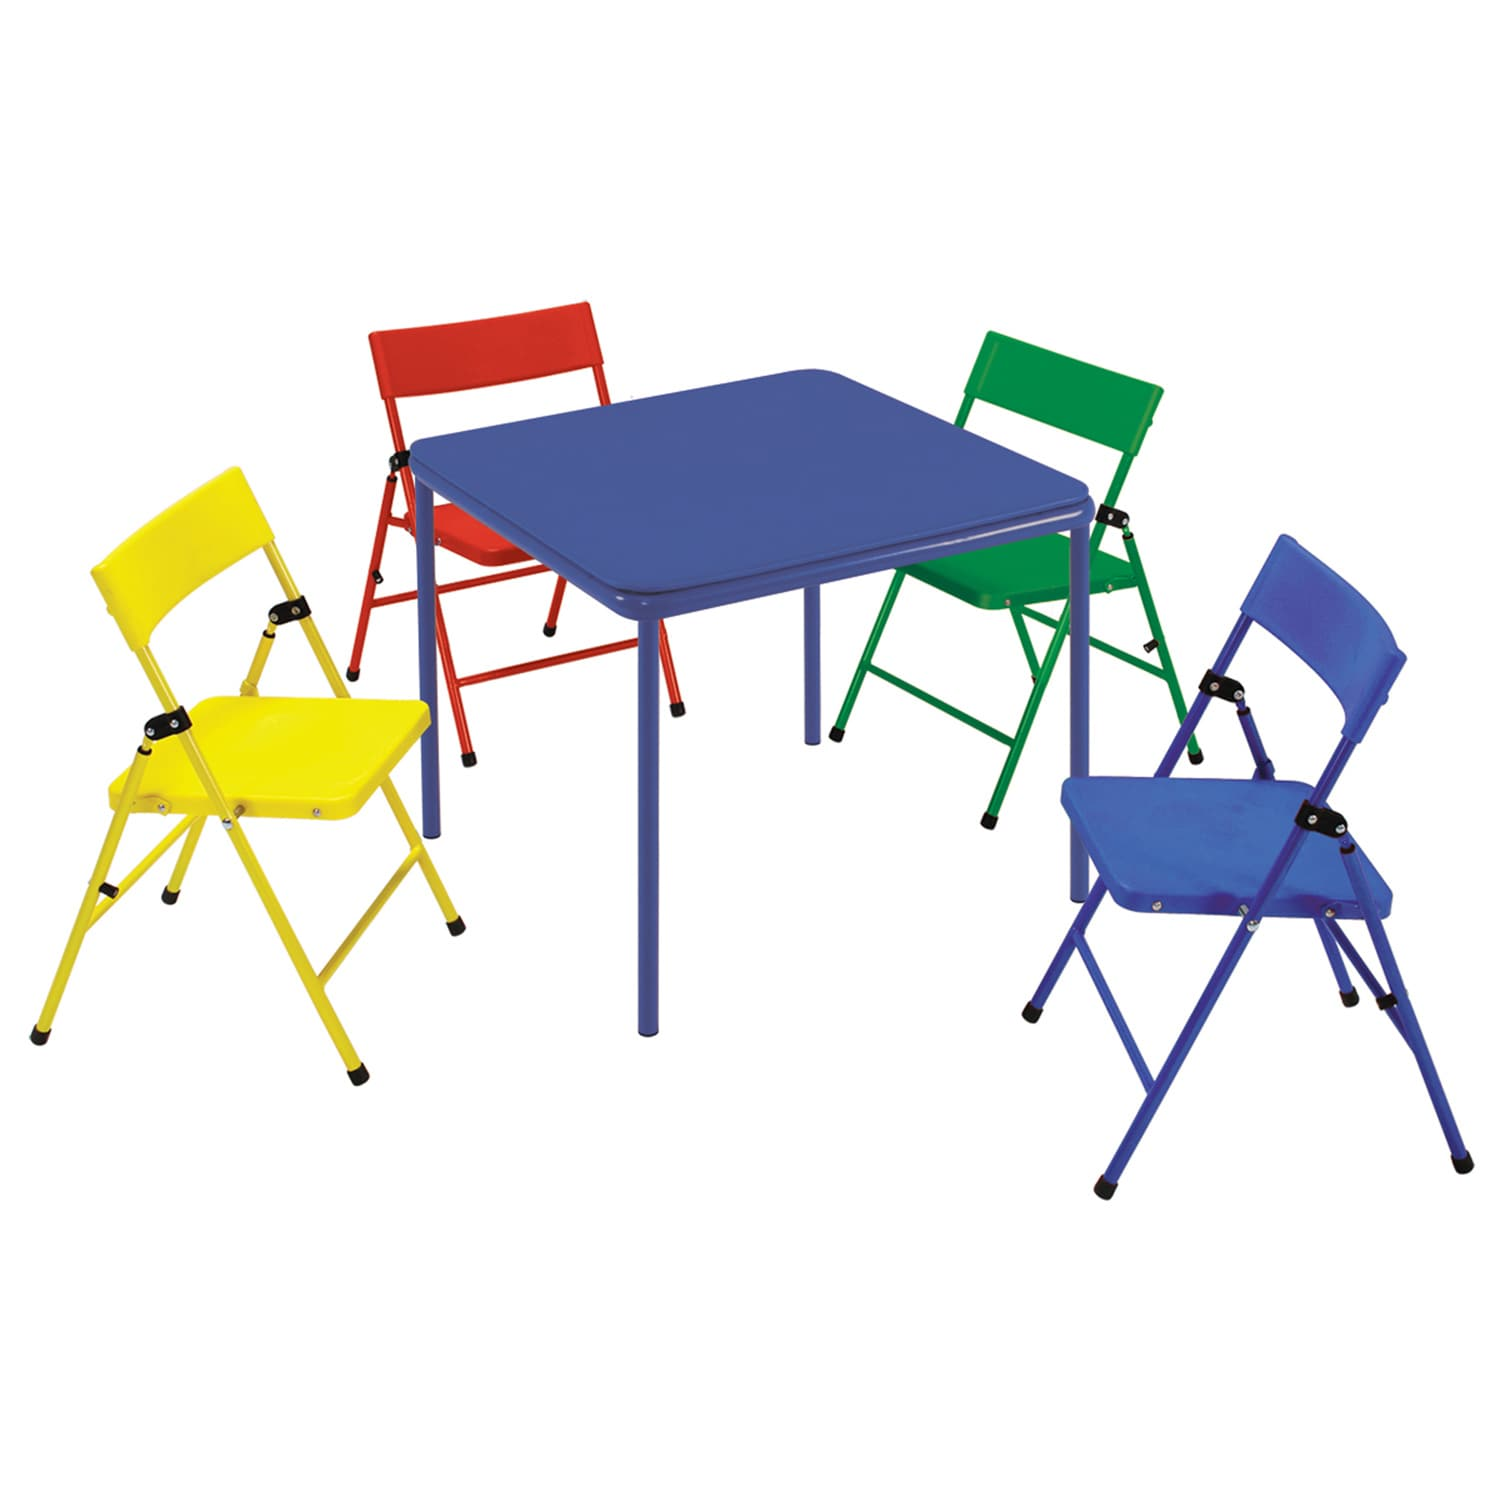 cosco kid 39 s 5 piece colored folding chair and table set overstock shopping big discounts on. Black Bedroom Furniture Sets. Home Design Ideas